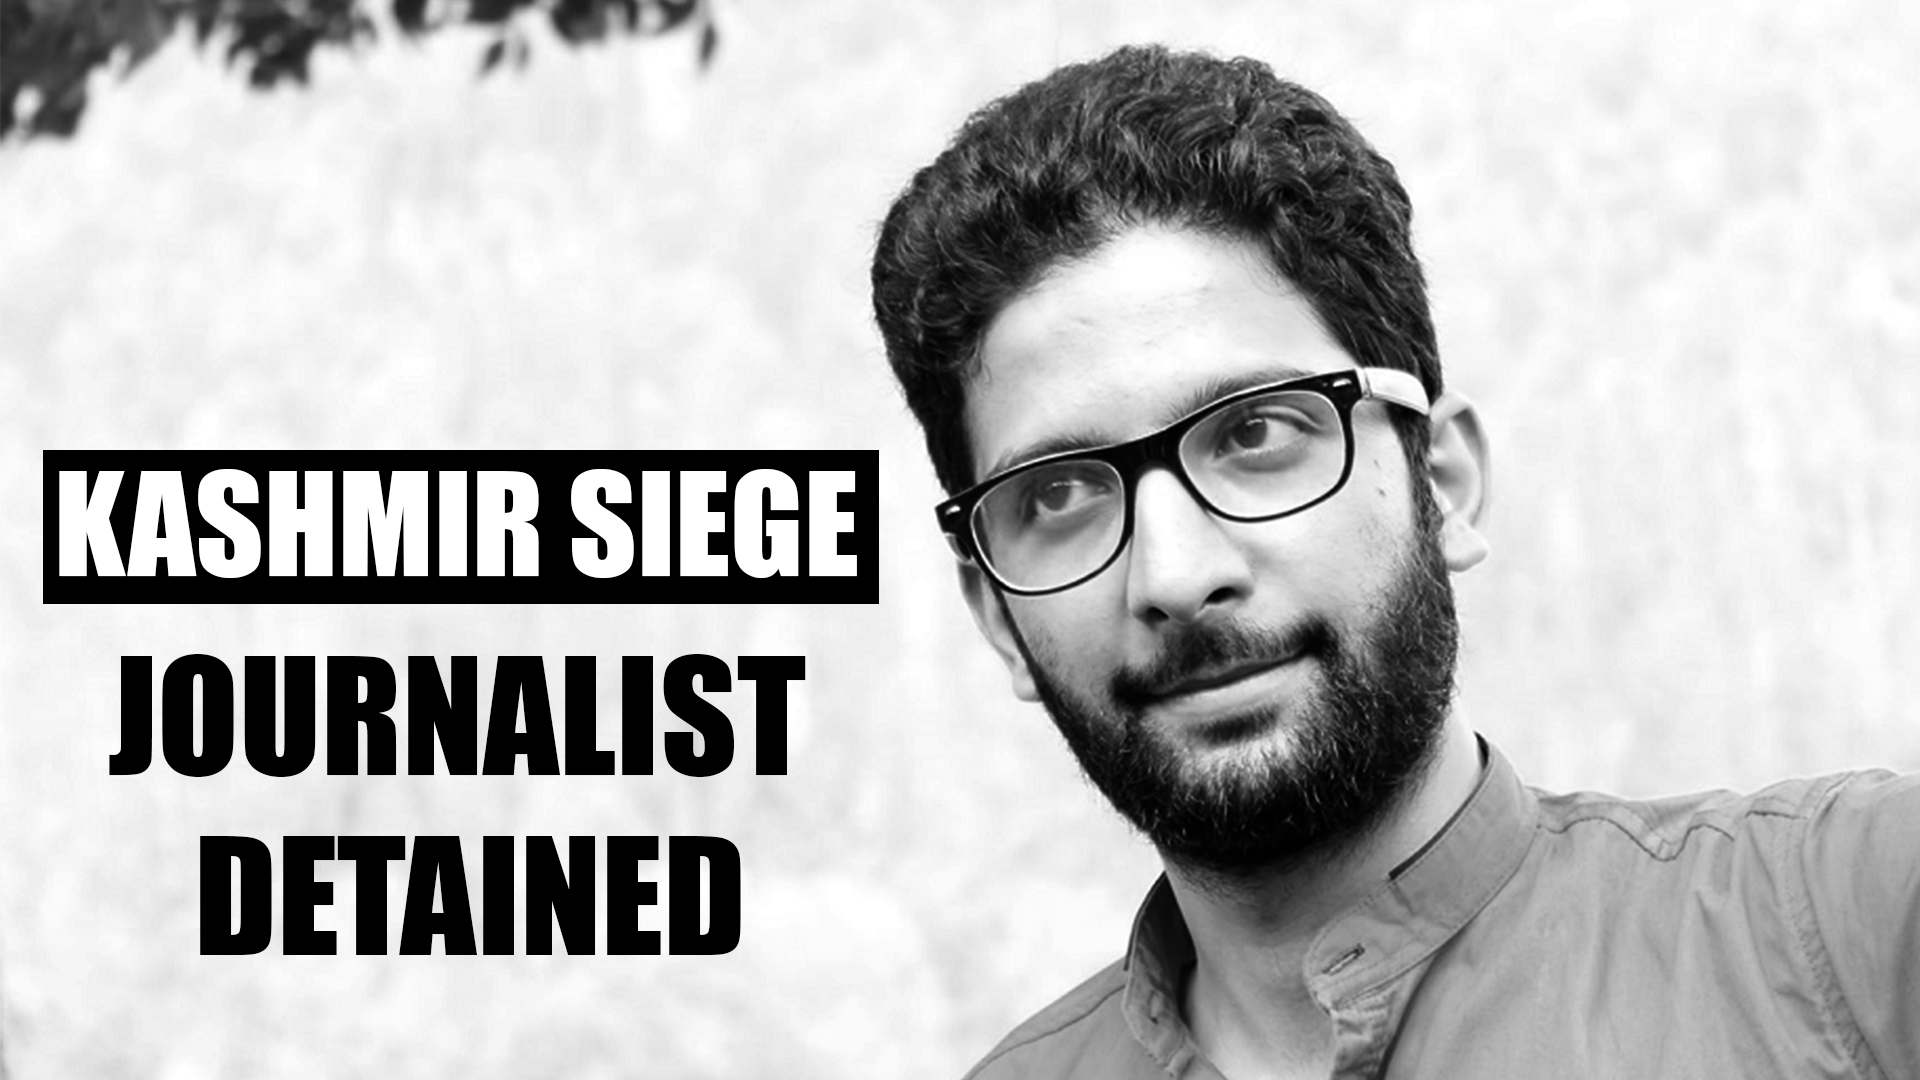 JOURNALIST DETAINED_KASHMIR SIEGE